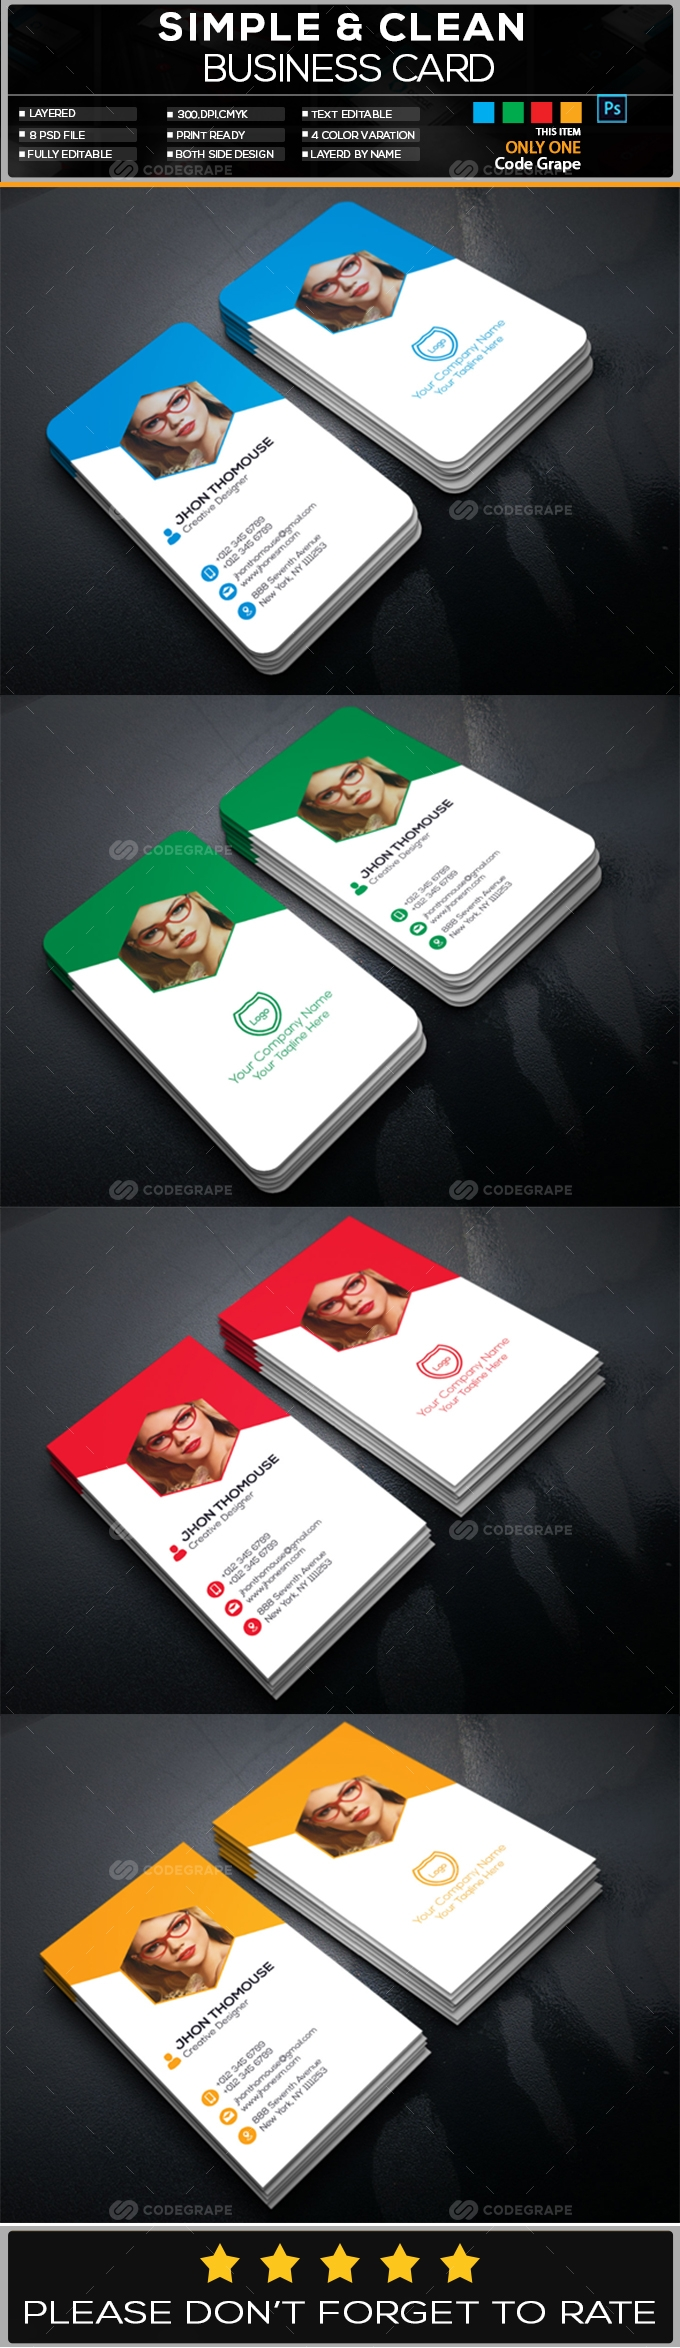 Photography Business Card Vol - 2